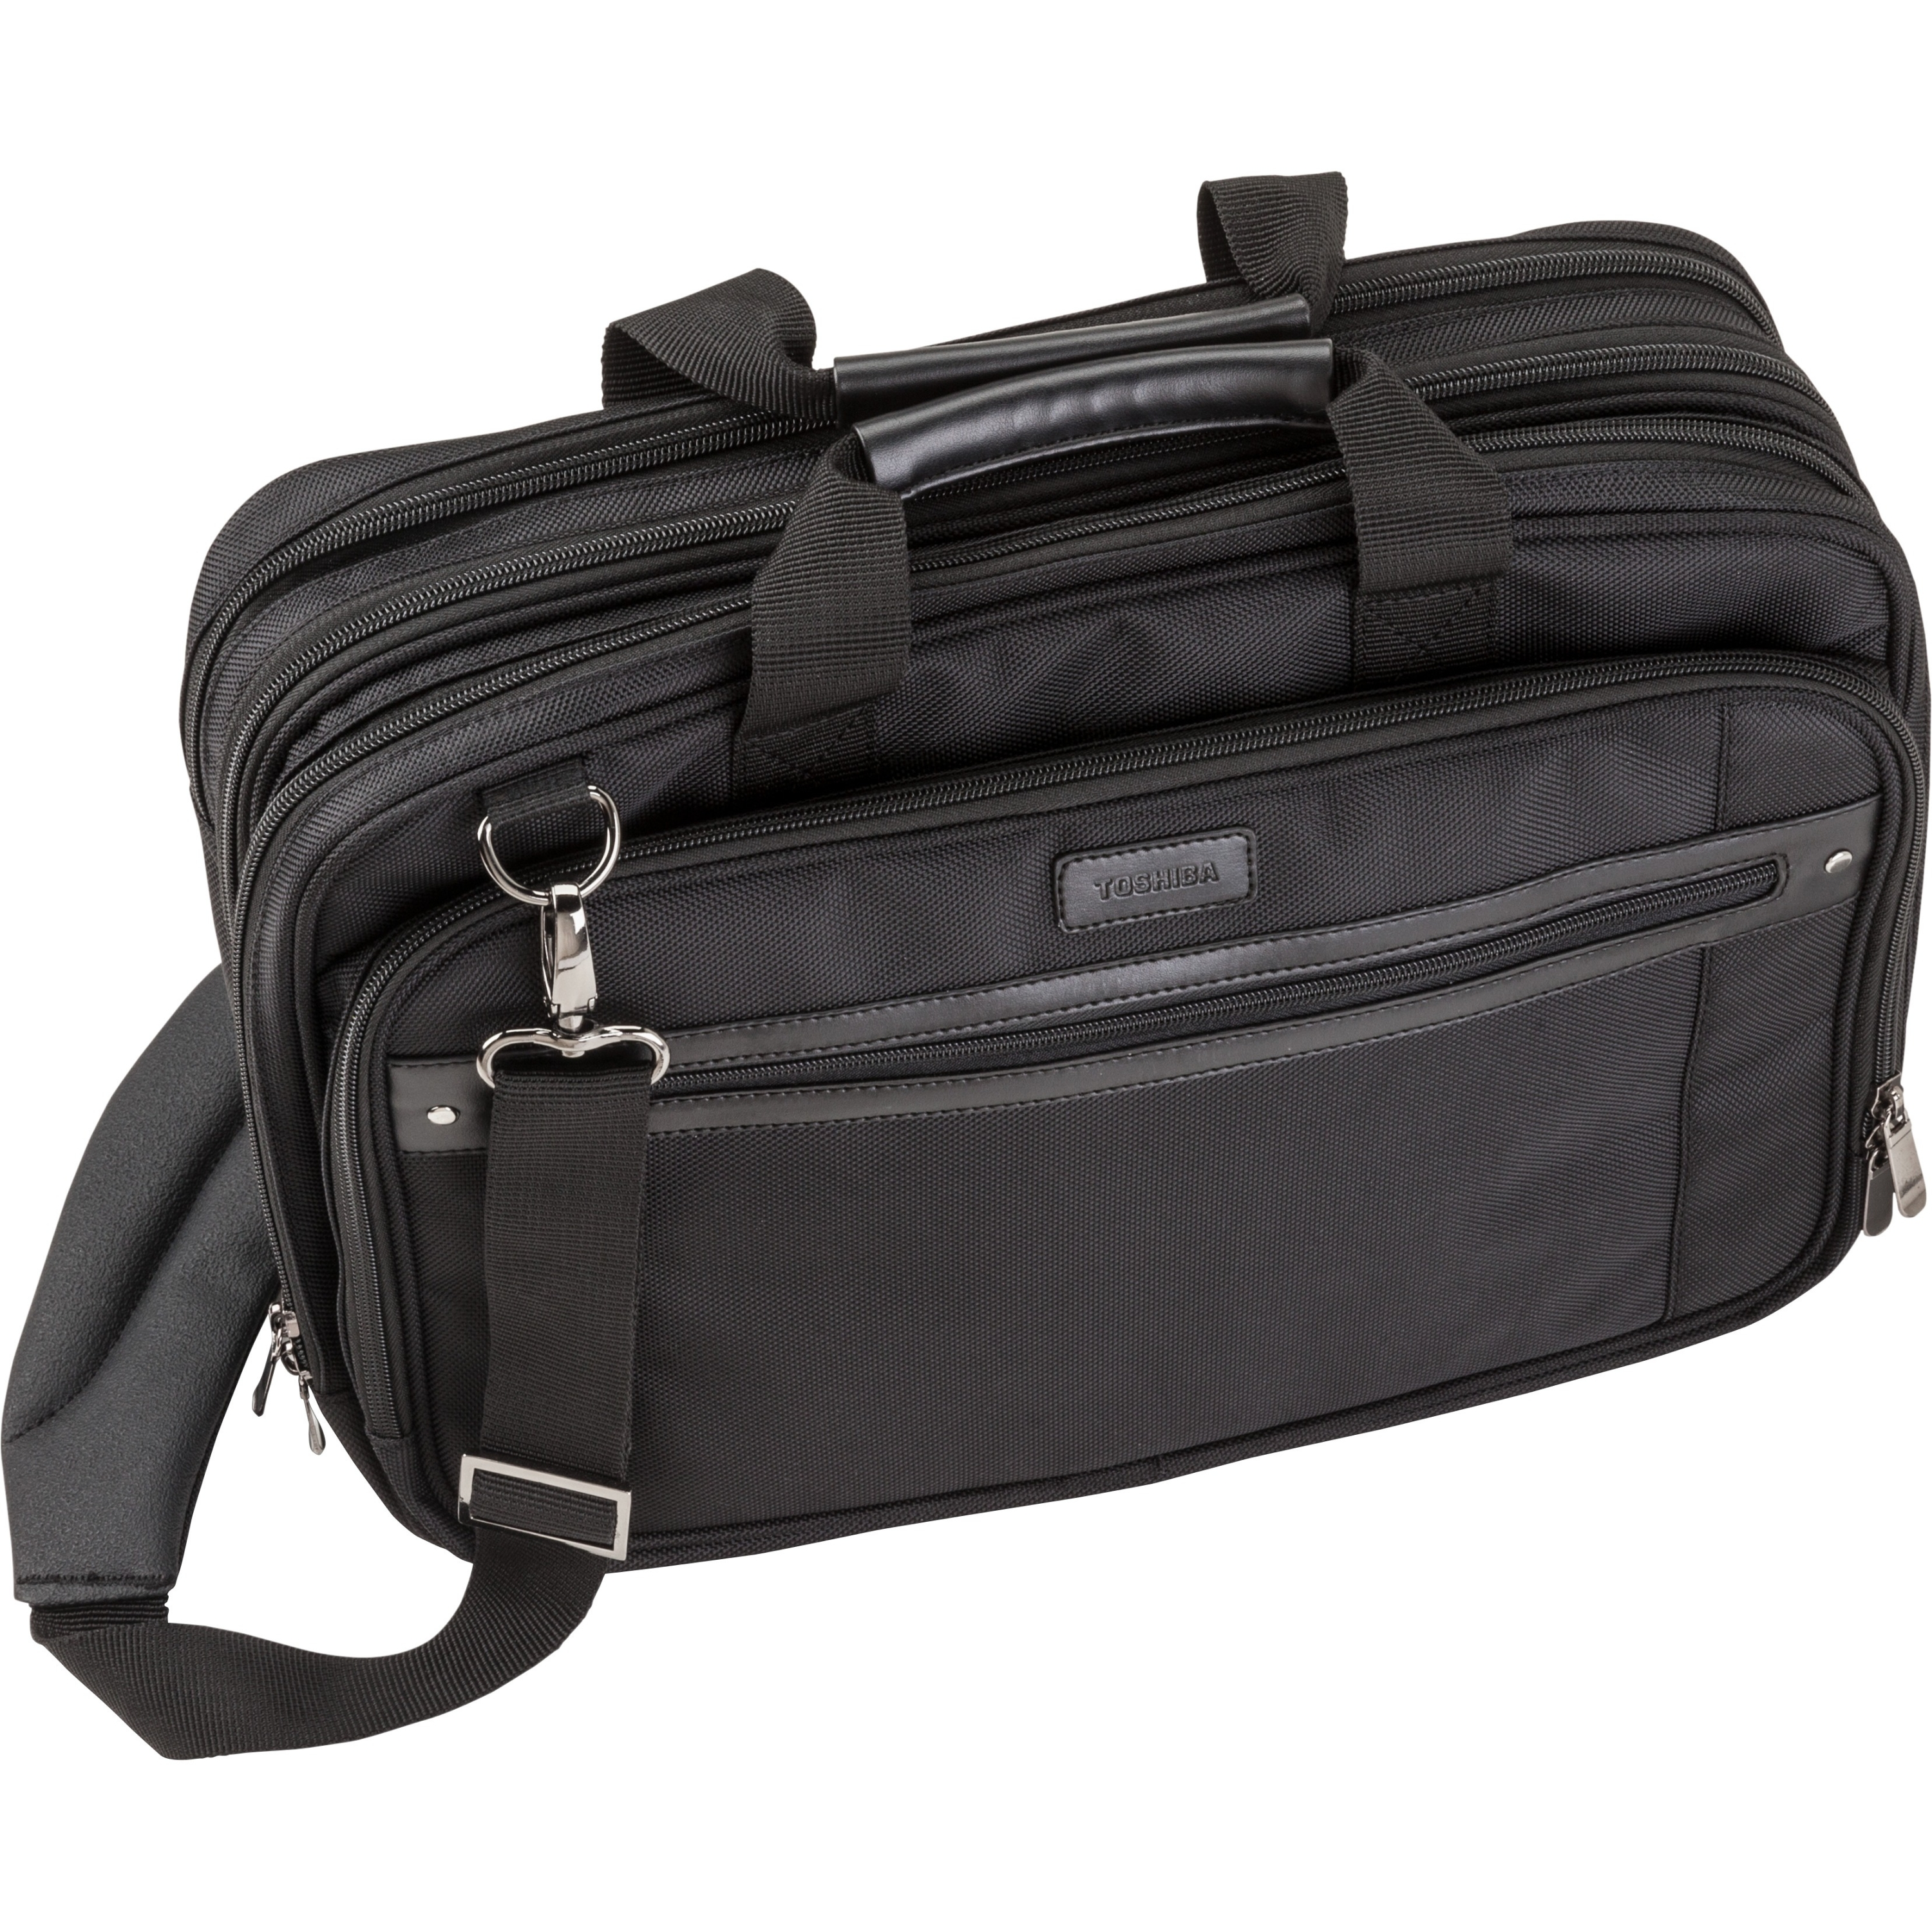 "Toshiba Envoy 2 Carrying Case For 16"" Notebook - Black - 1680d Ballistic Polyester - Checkpoint Friendly - Shoulder Strap, Handle, Trolley Strap (pa1563u-1cs6)"